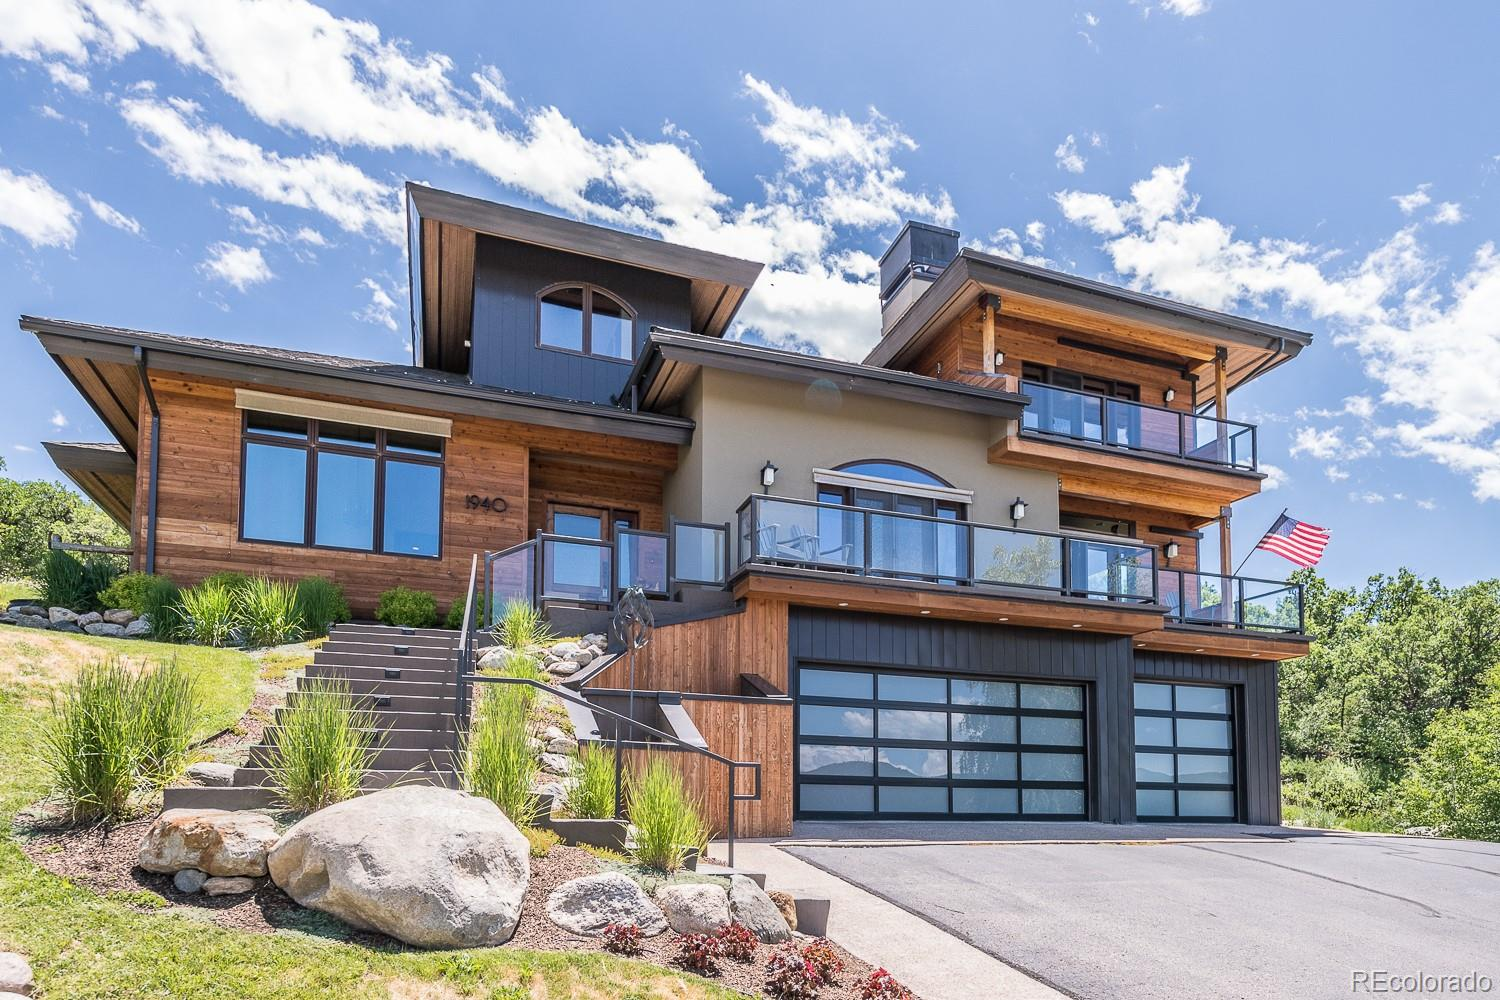 MLS# 4540014 - 1 - 1940 Clubhouse Drive, Steamboat Springs, CO 80487